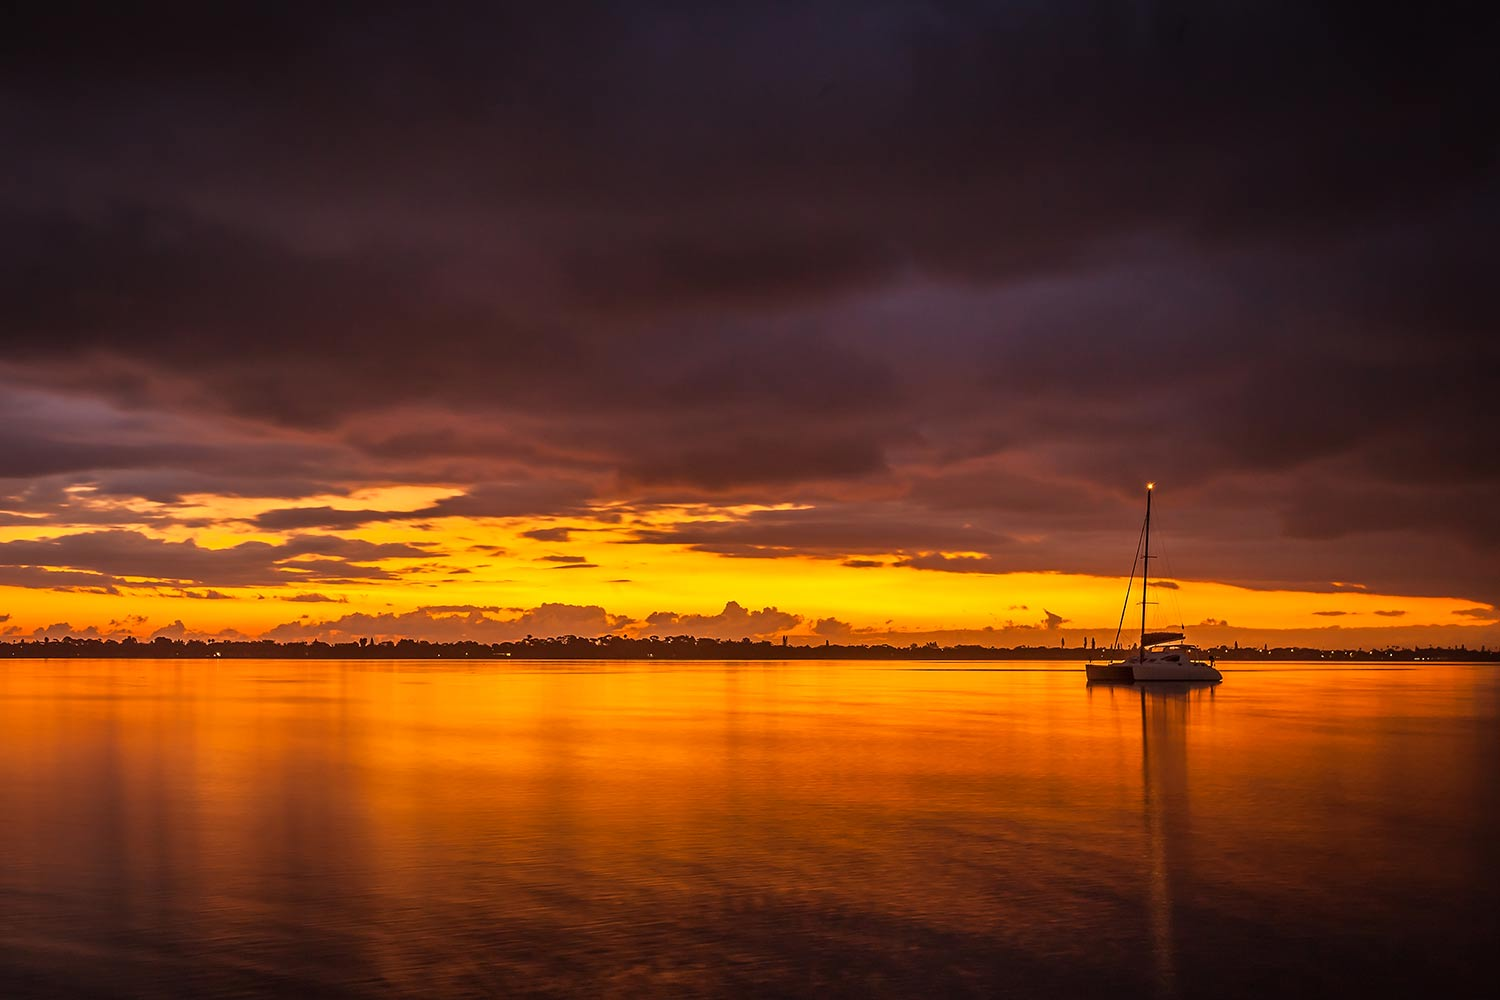 Sunrise on the Indian River, Melbourne.